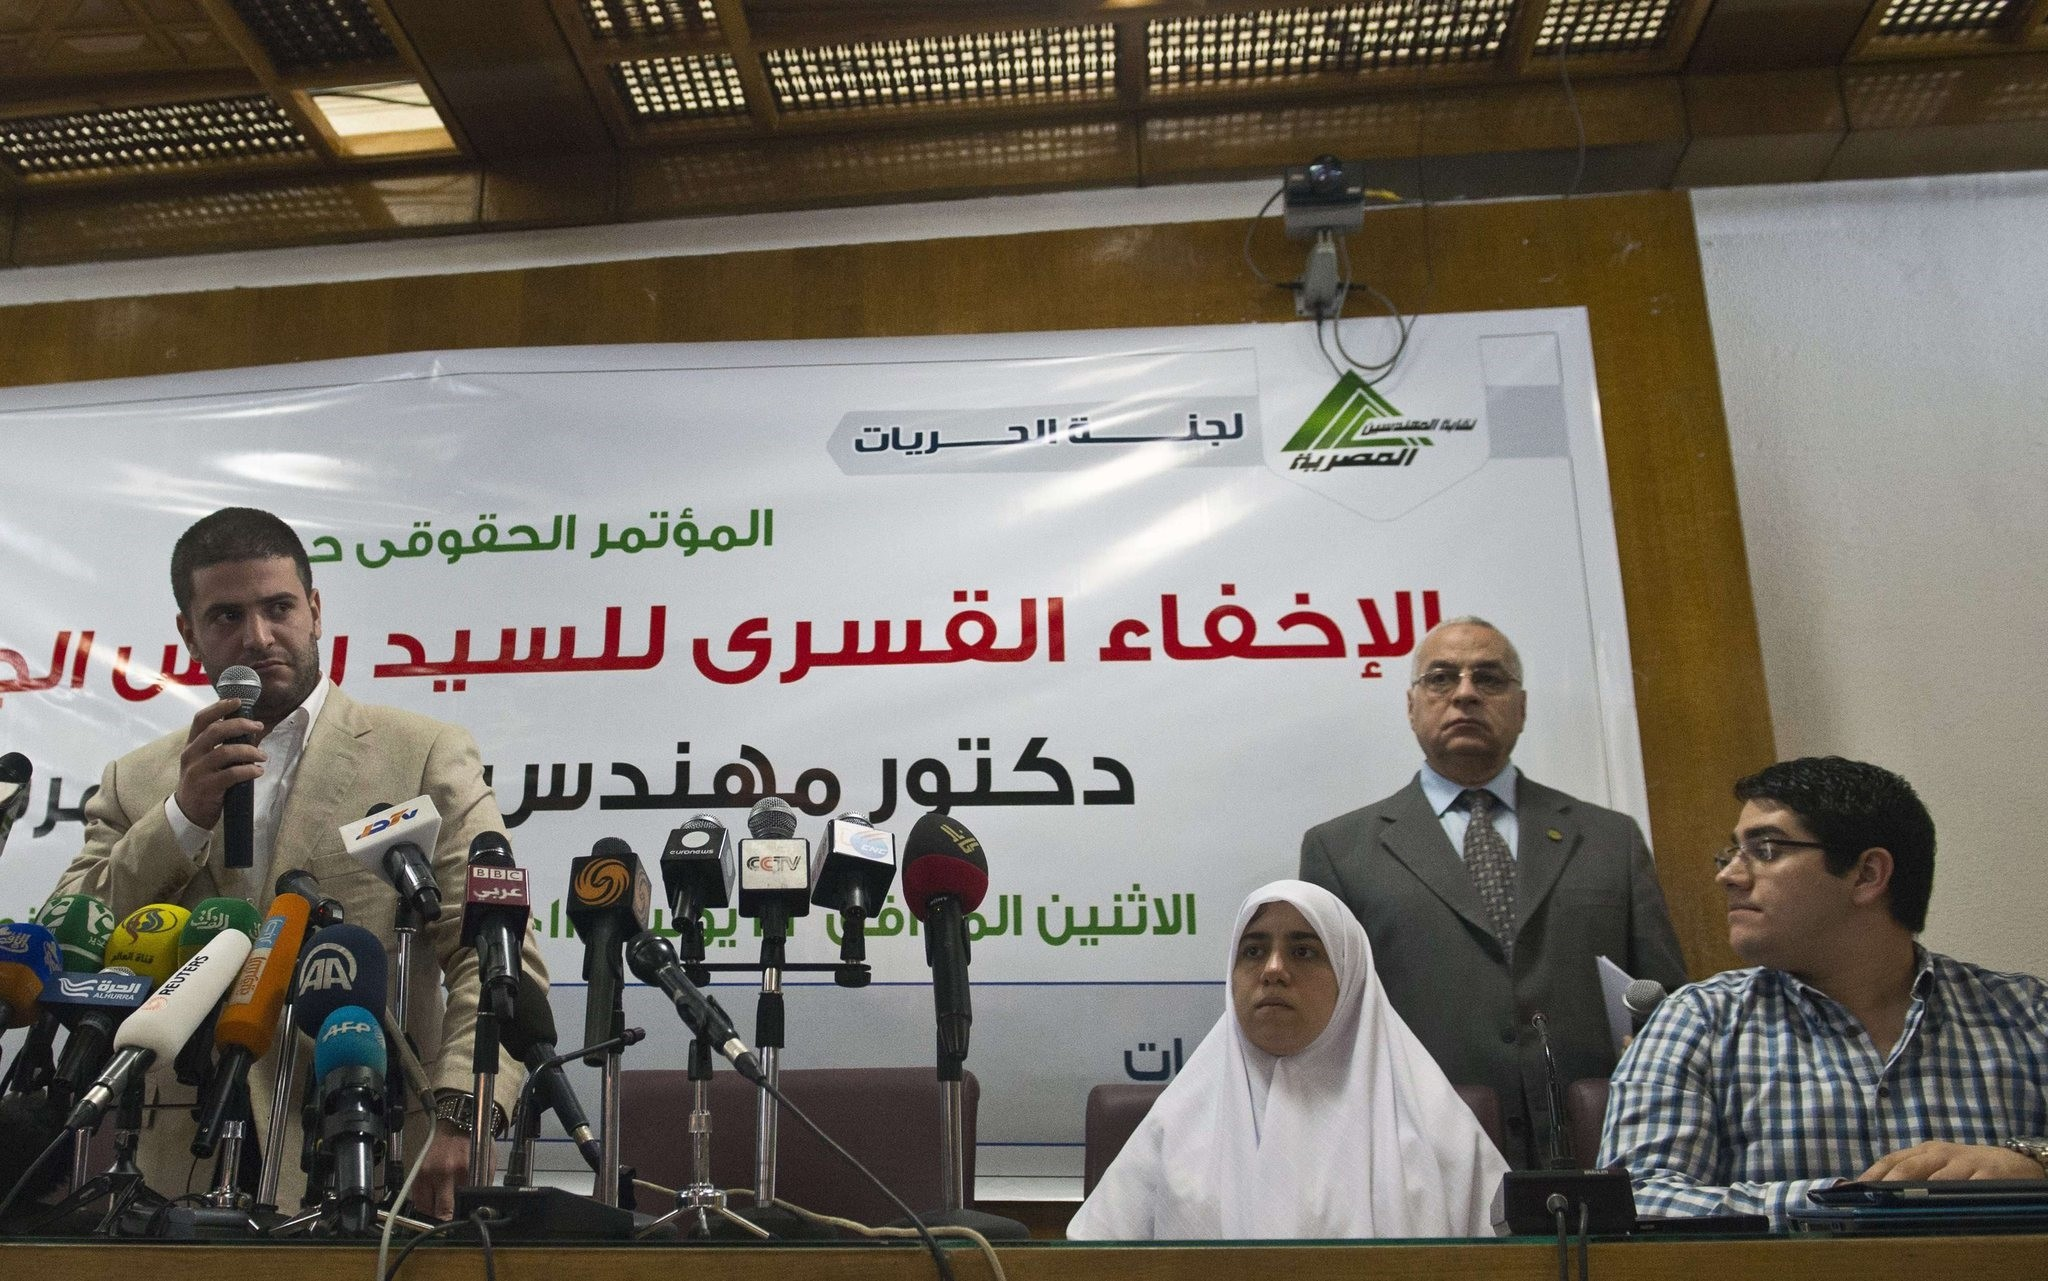 Osama (L), Shaimaa (C) and Abdulah (R) Mohamed Morsi, the sons and daughter of Egypt's ousted president Mohamed Morsi give a press conference in Cairo on July 22, 2013. (AFP Photo)